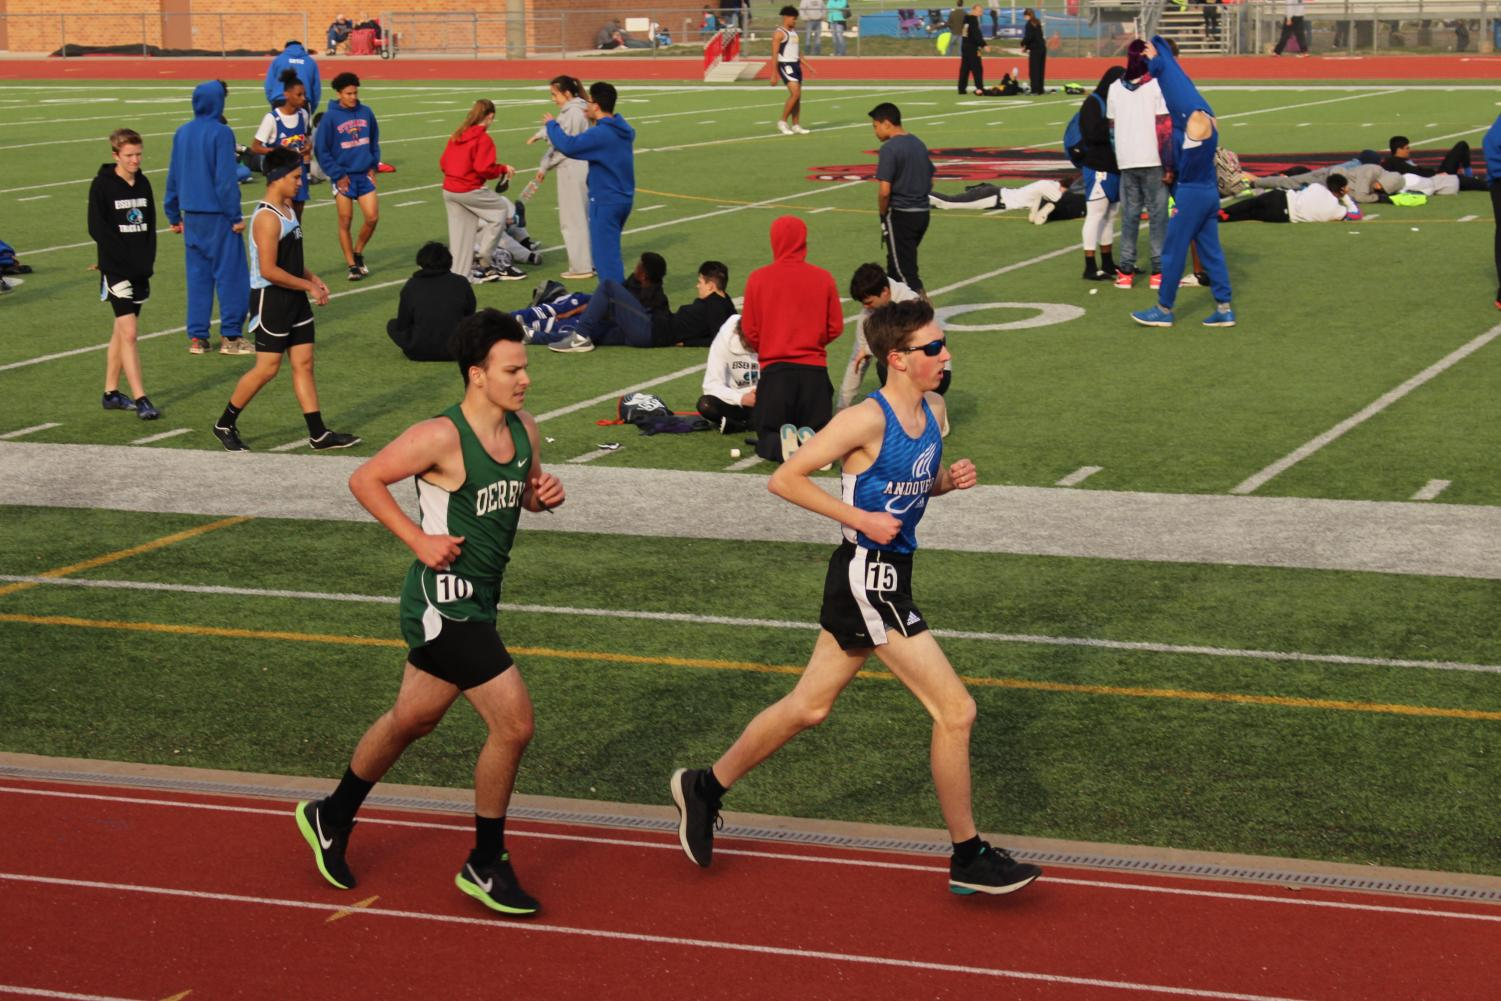 JV Track Meet @Maize High (Photos by Alex Flanagan)